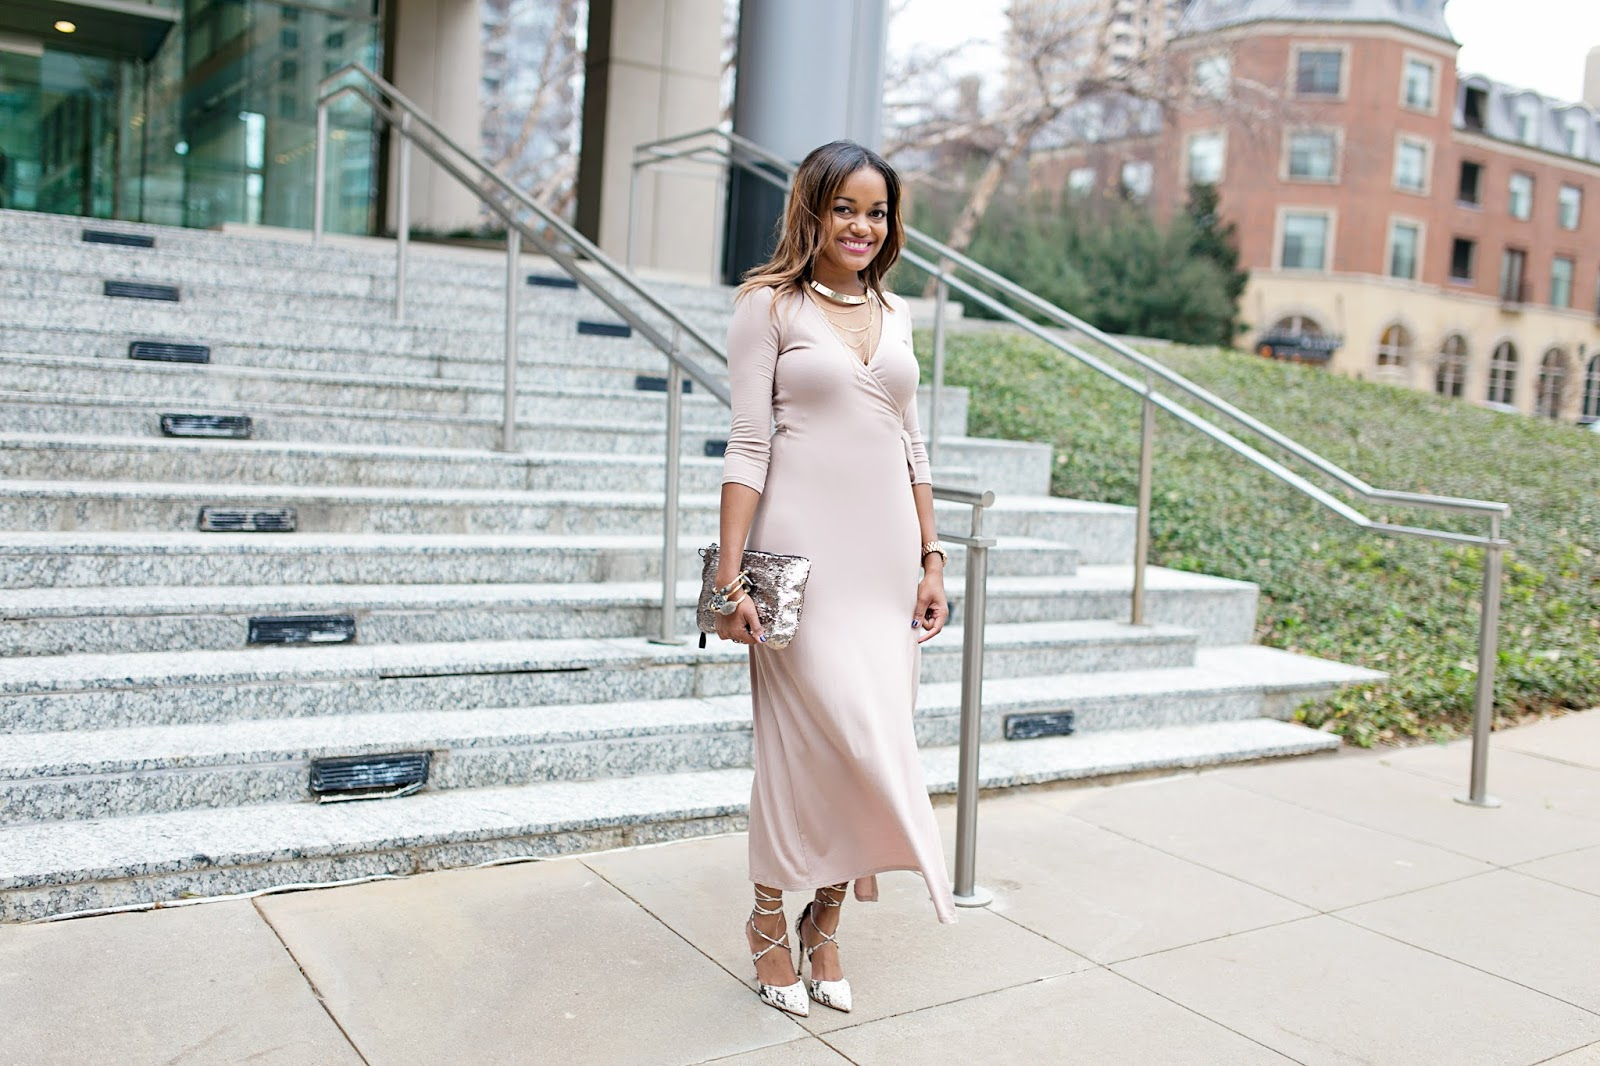 wrap dress, maxi dress, winter maxi dress, nude dress, blush pink dress, forever 21, sequin clutch, target handbag, steve madden raela, druzy bracelets, statement necklace, H&M, dallas blogger, fashion blogger, black girl blogger, detroit blogger